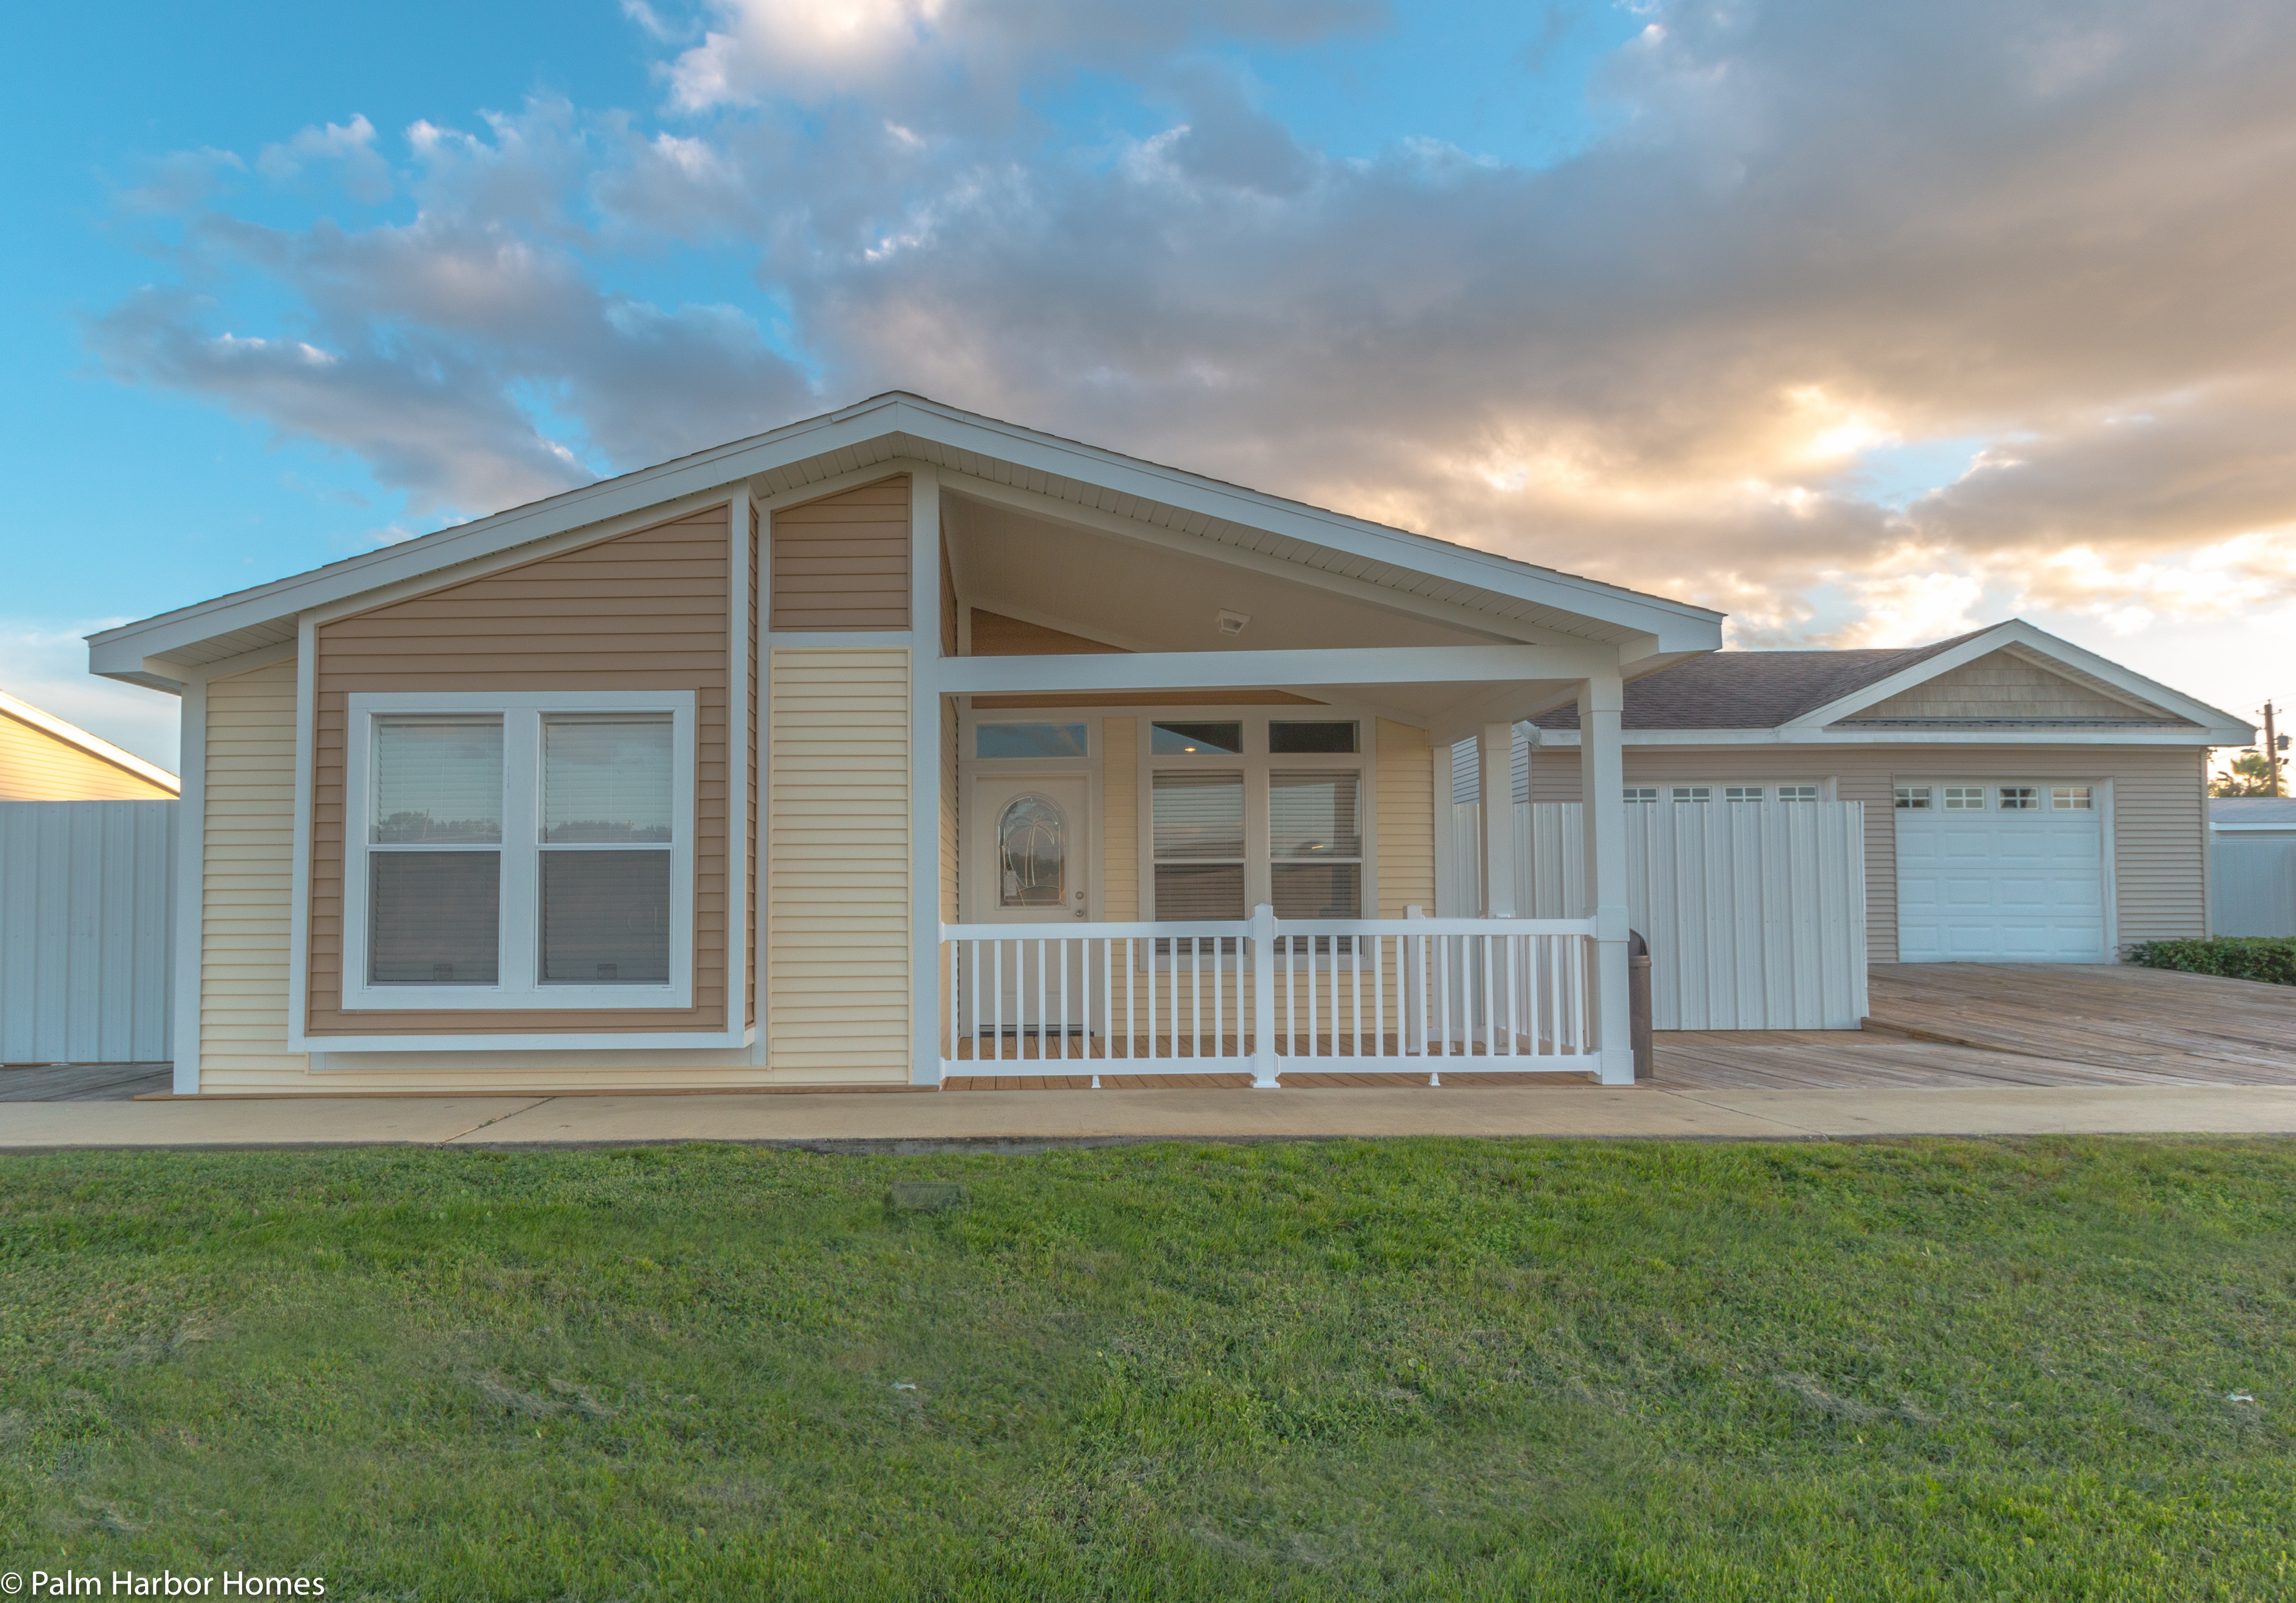 Summer-Breeze-4-Palm-Harbor-Manufactured-home_Front-porch-1 Palm Mobile Homes on sun mobile homes, delta mobile homes, magnolia mobile homes, apple mobile homes, pace mobile homes, franklin mobile homes,